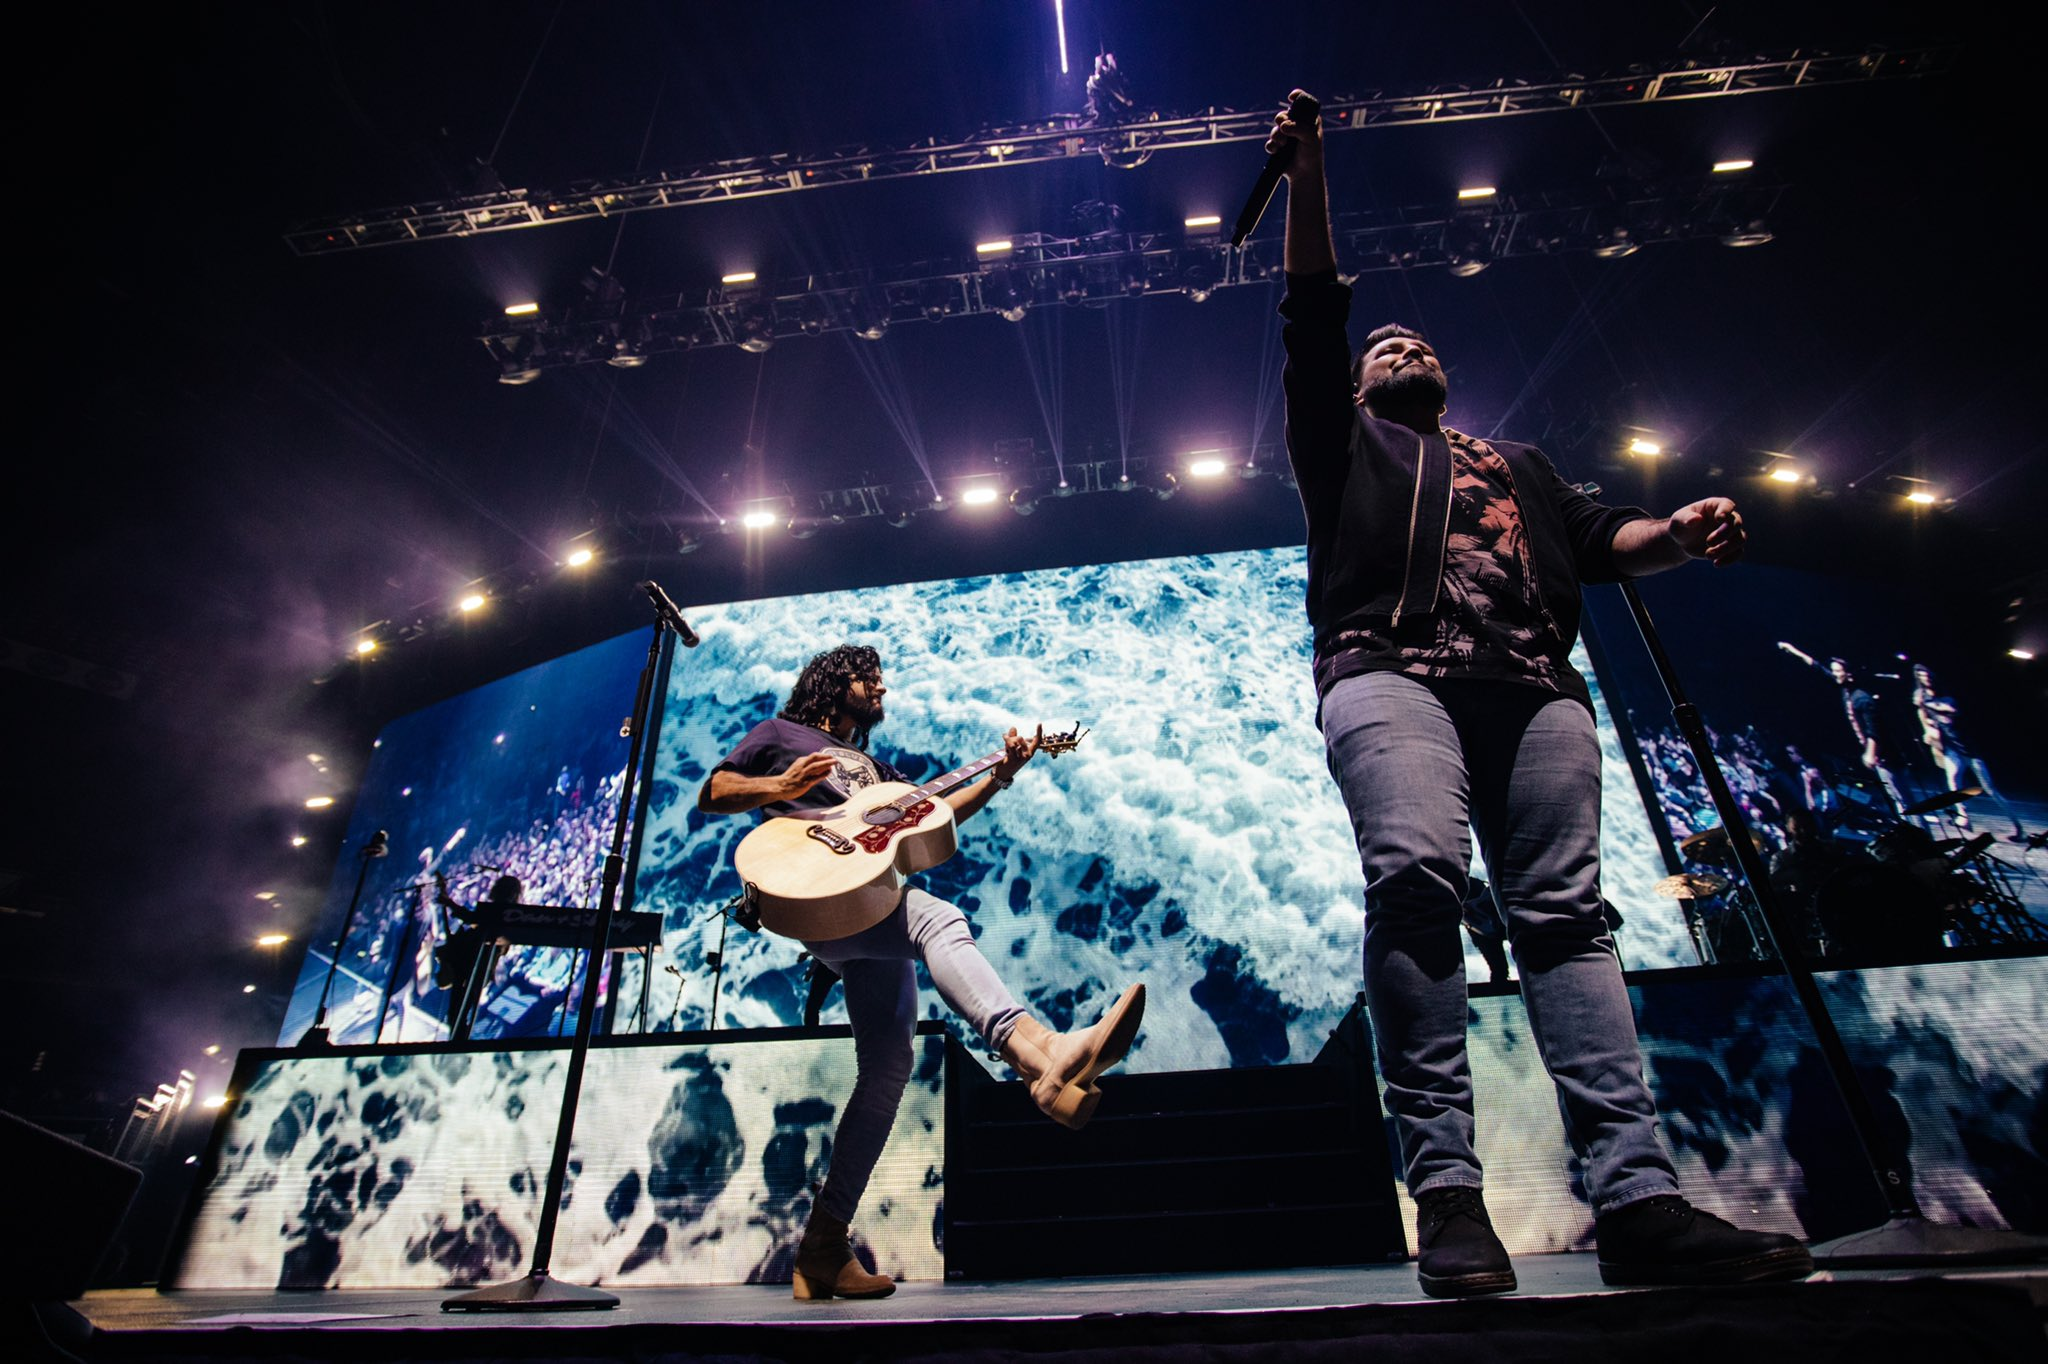 LIVE REVIEW: Dan + Shay's first arena tour is an undeniable success